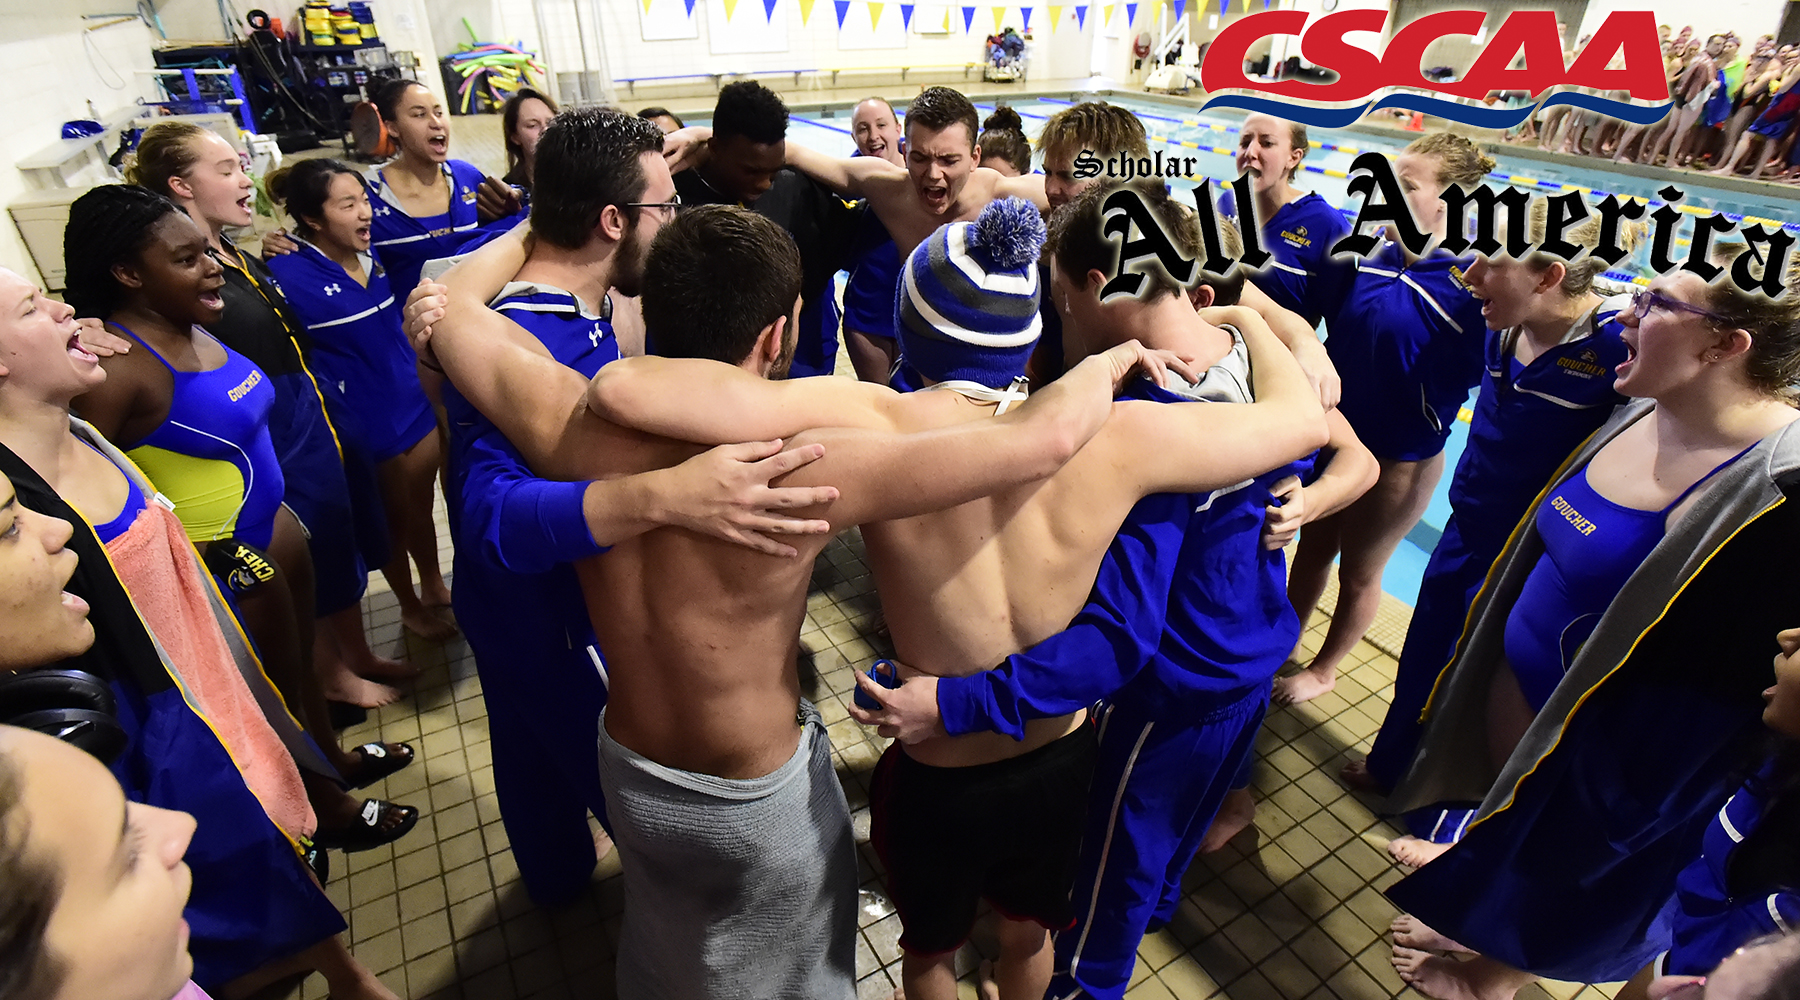 Men's & Women's Swimming Teams Earn CSCAA Scholar All-America Awards